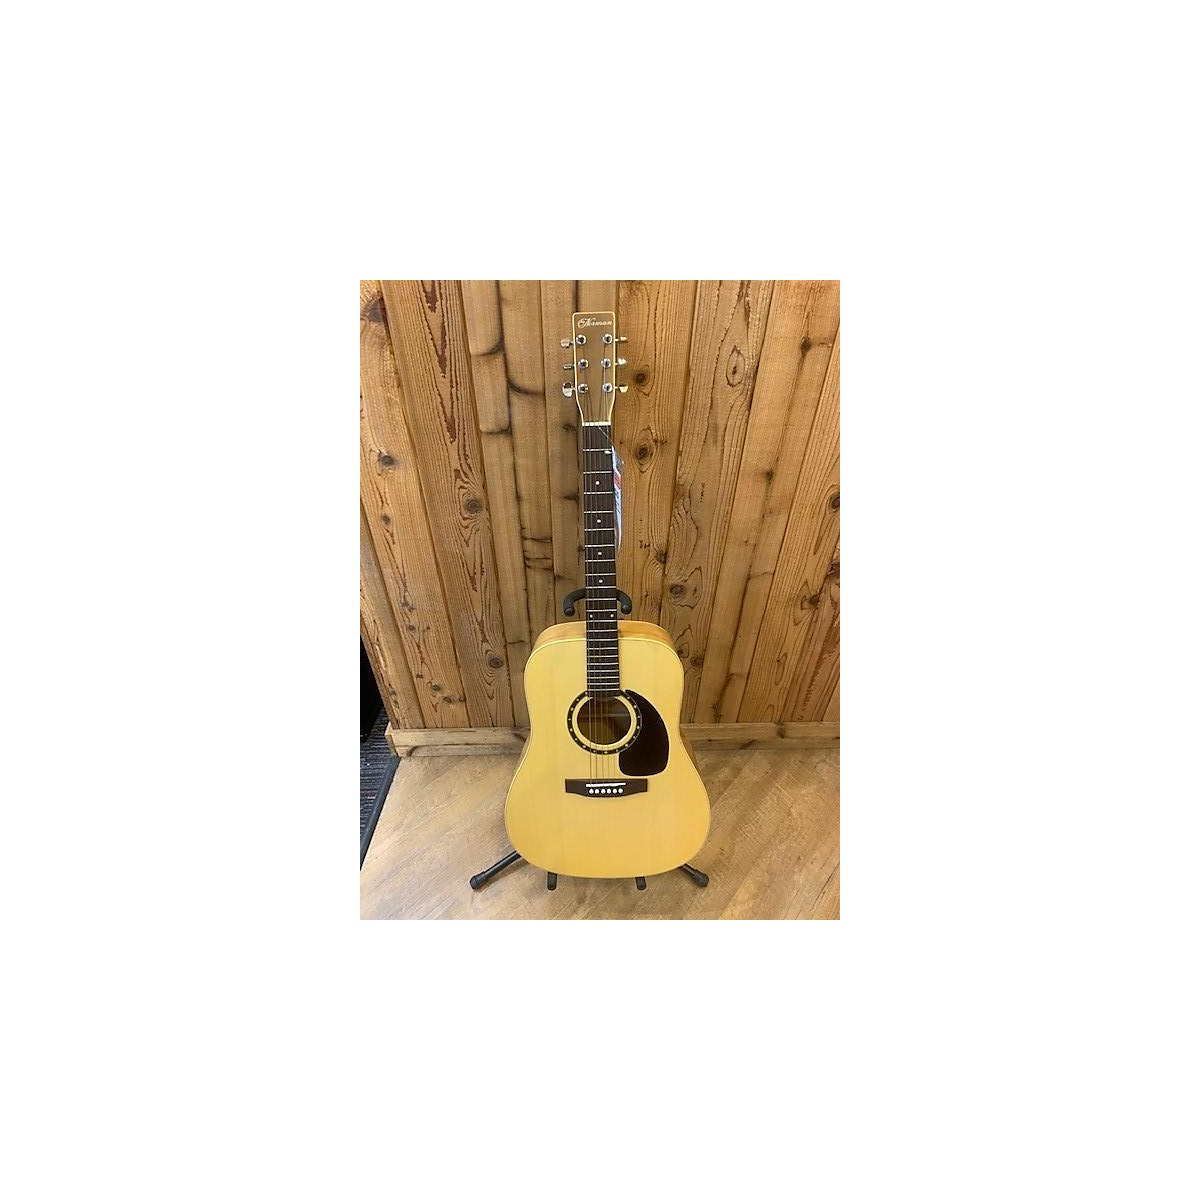 Norman Encore B20 Acoustic Guitar